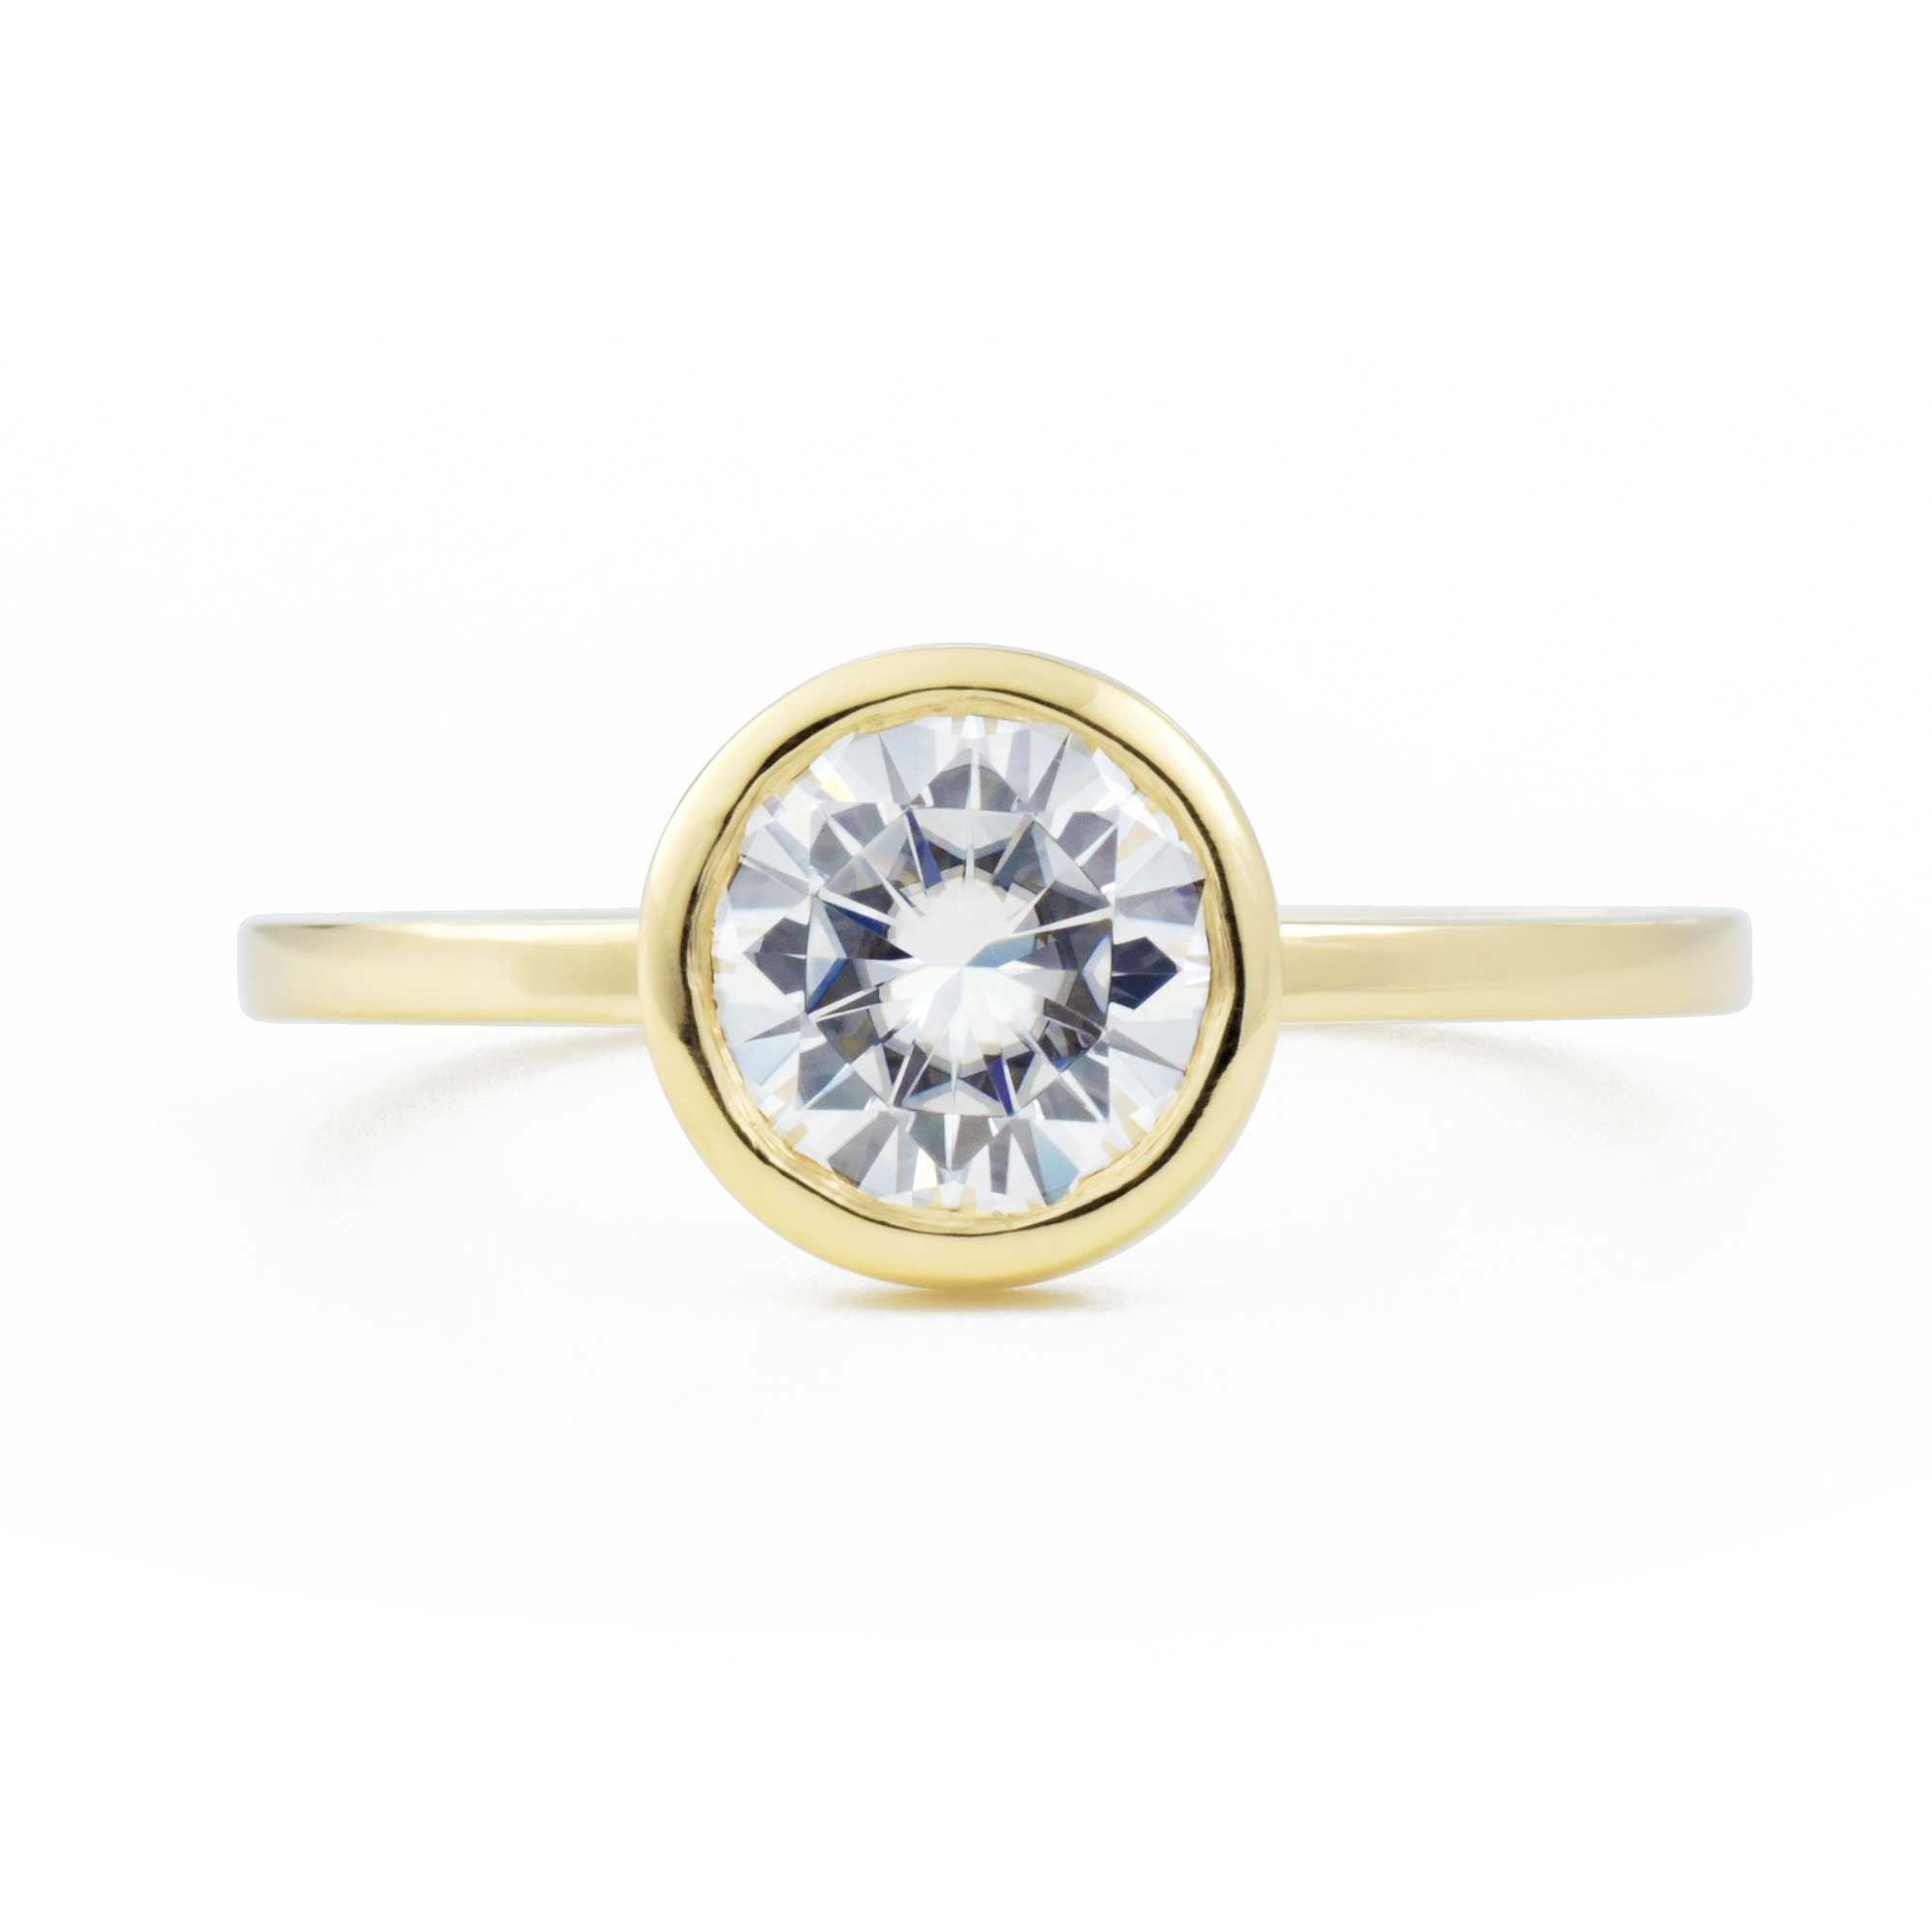 Aura Round Bezel 1ct Moissanite Engagement Ring in yellow gold